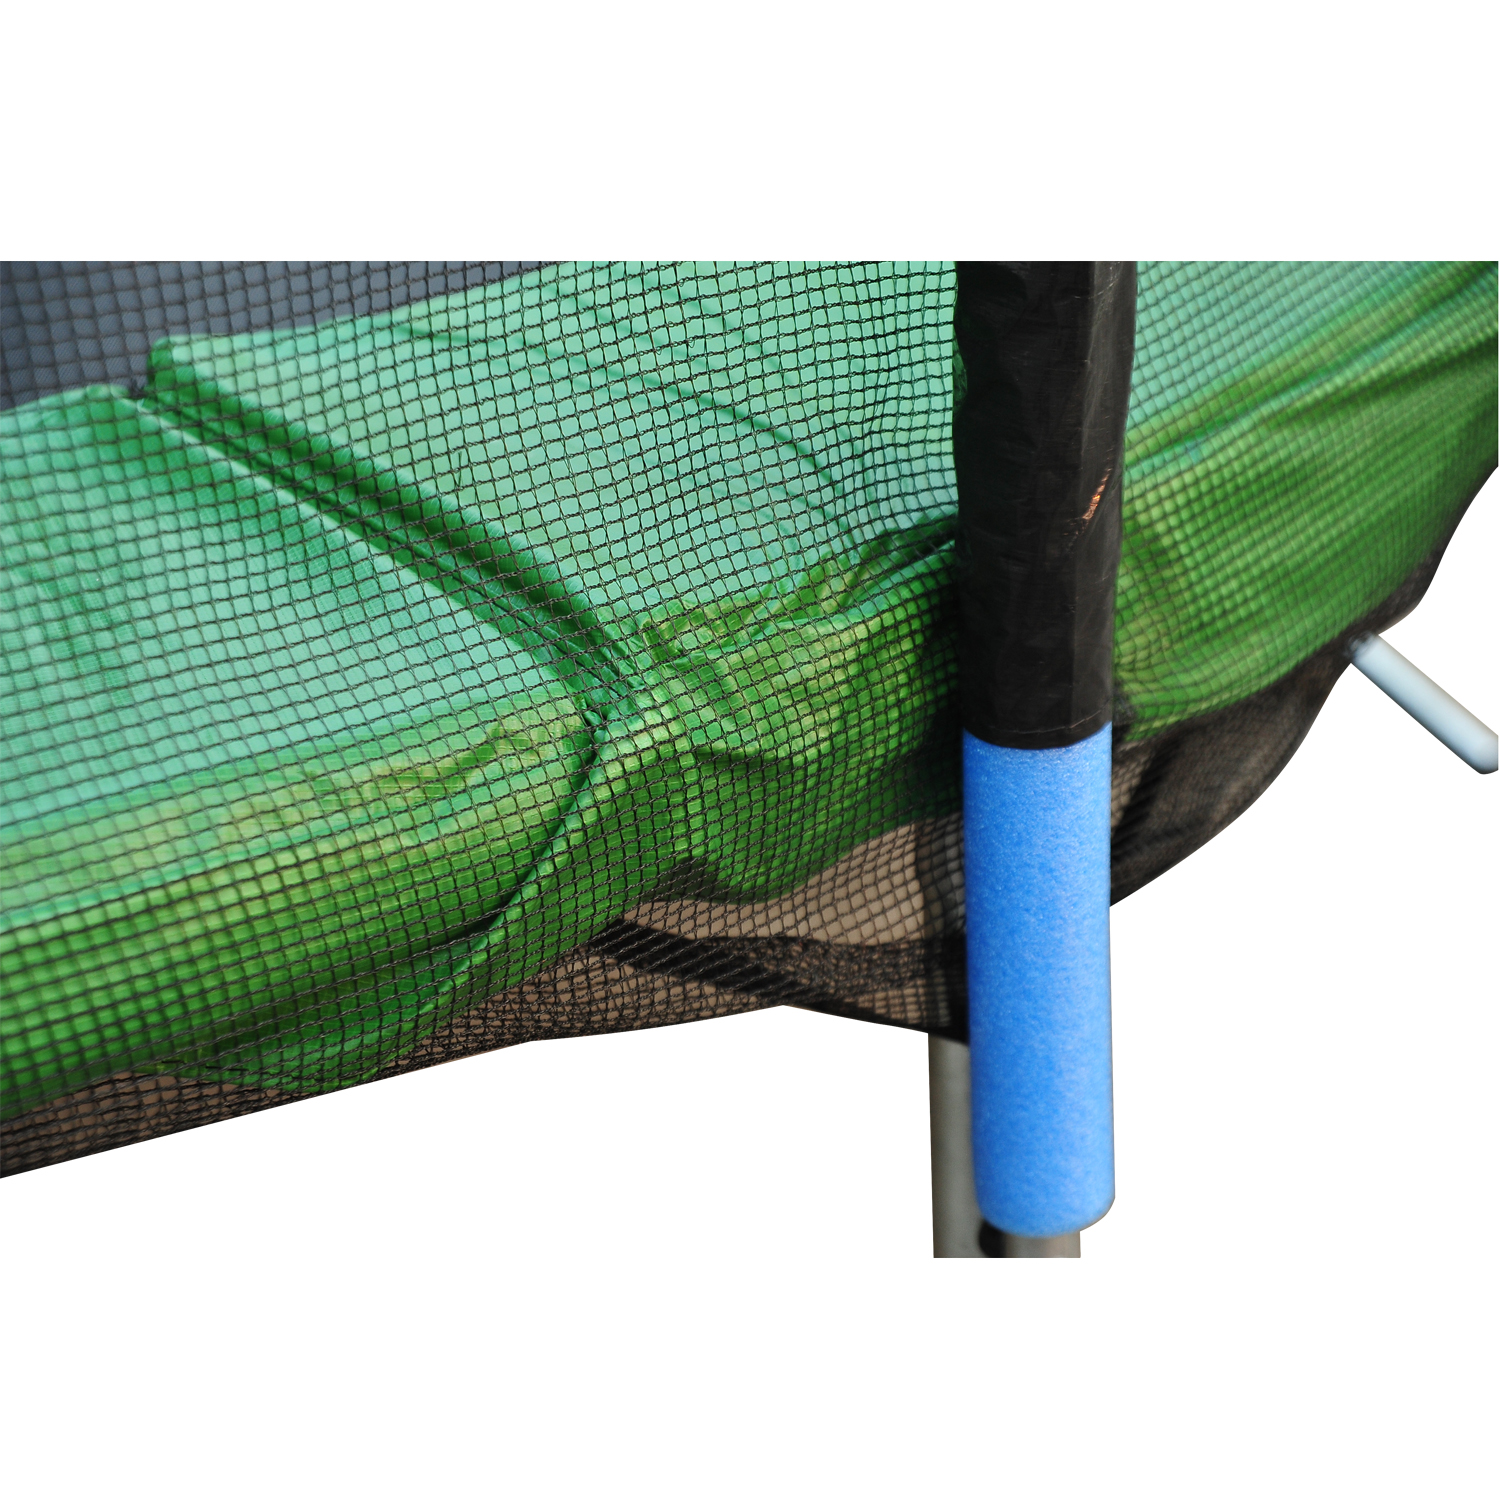 HOMCOM 13FT Trampoline Replacement Spare Net Safety